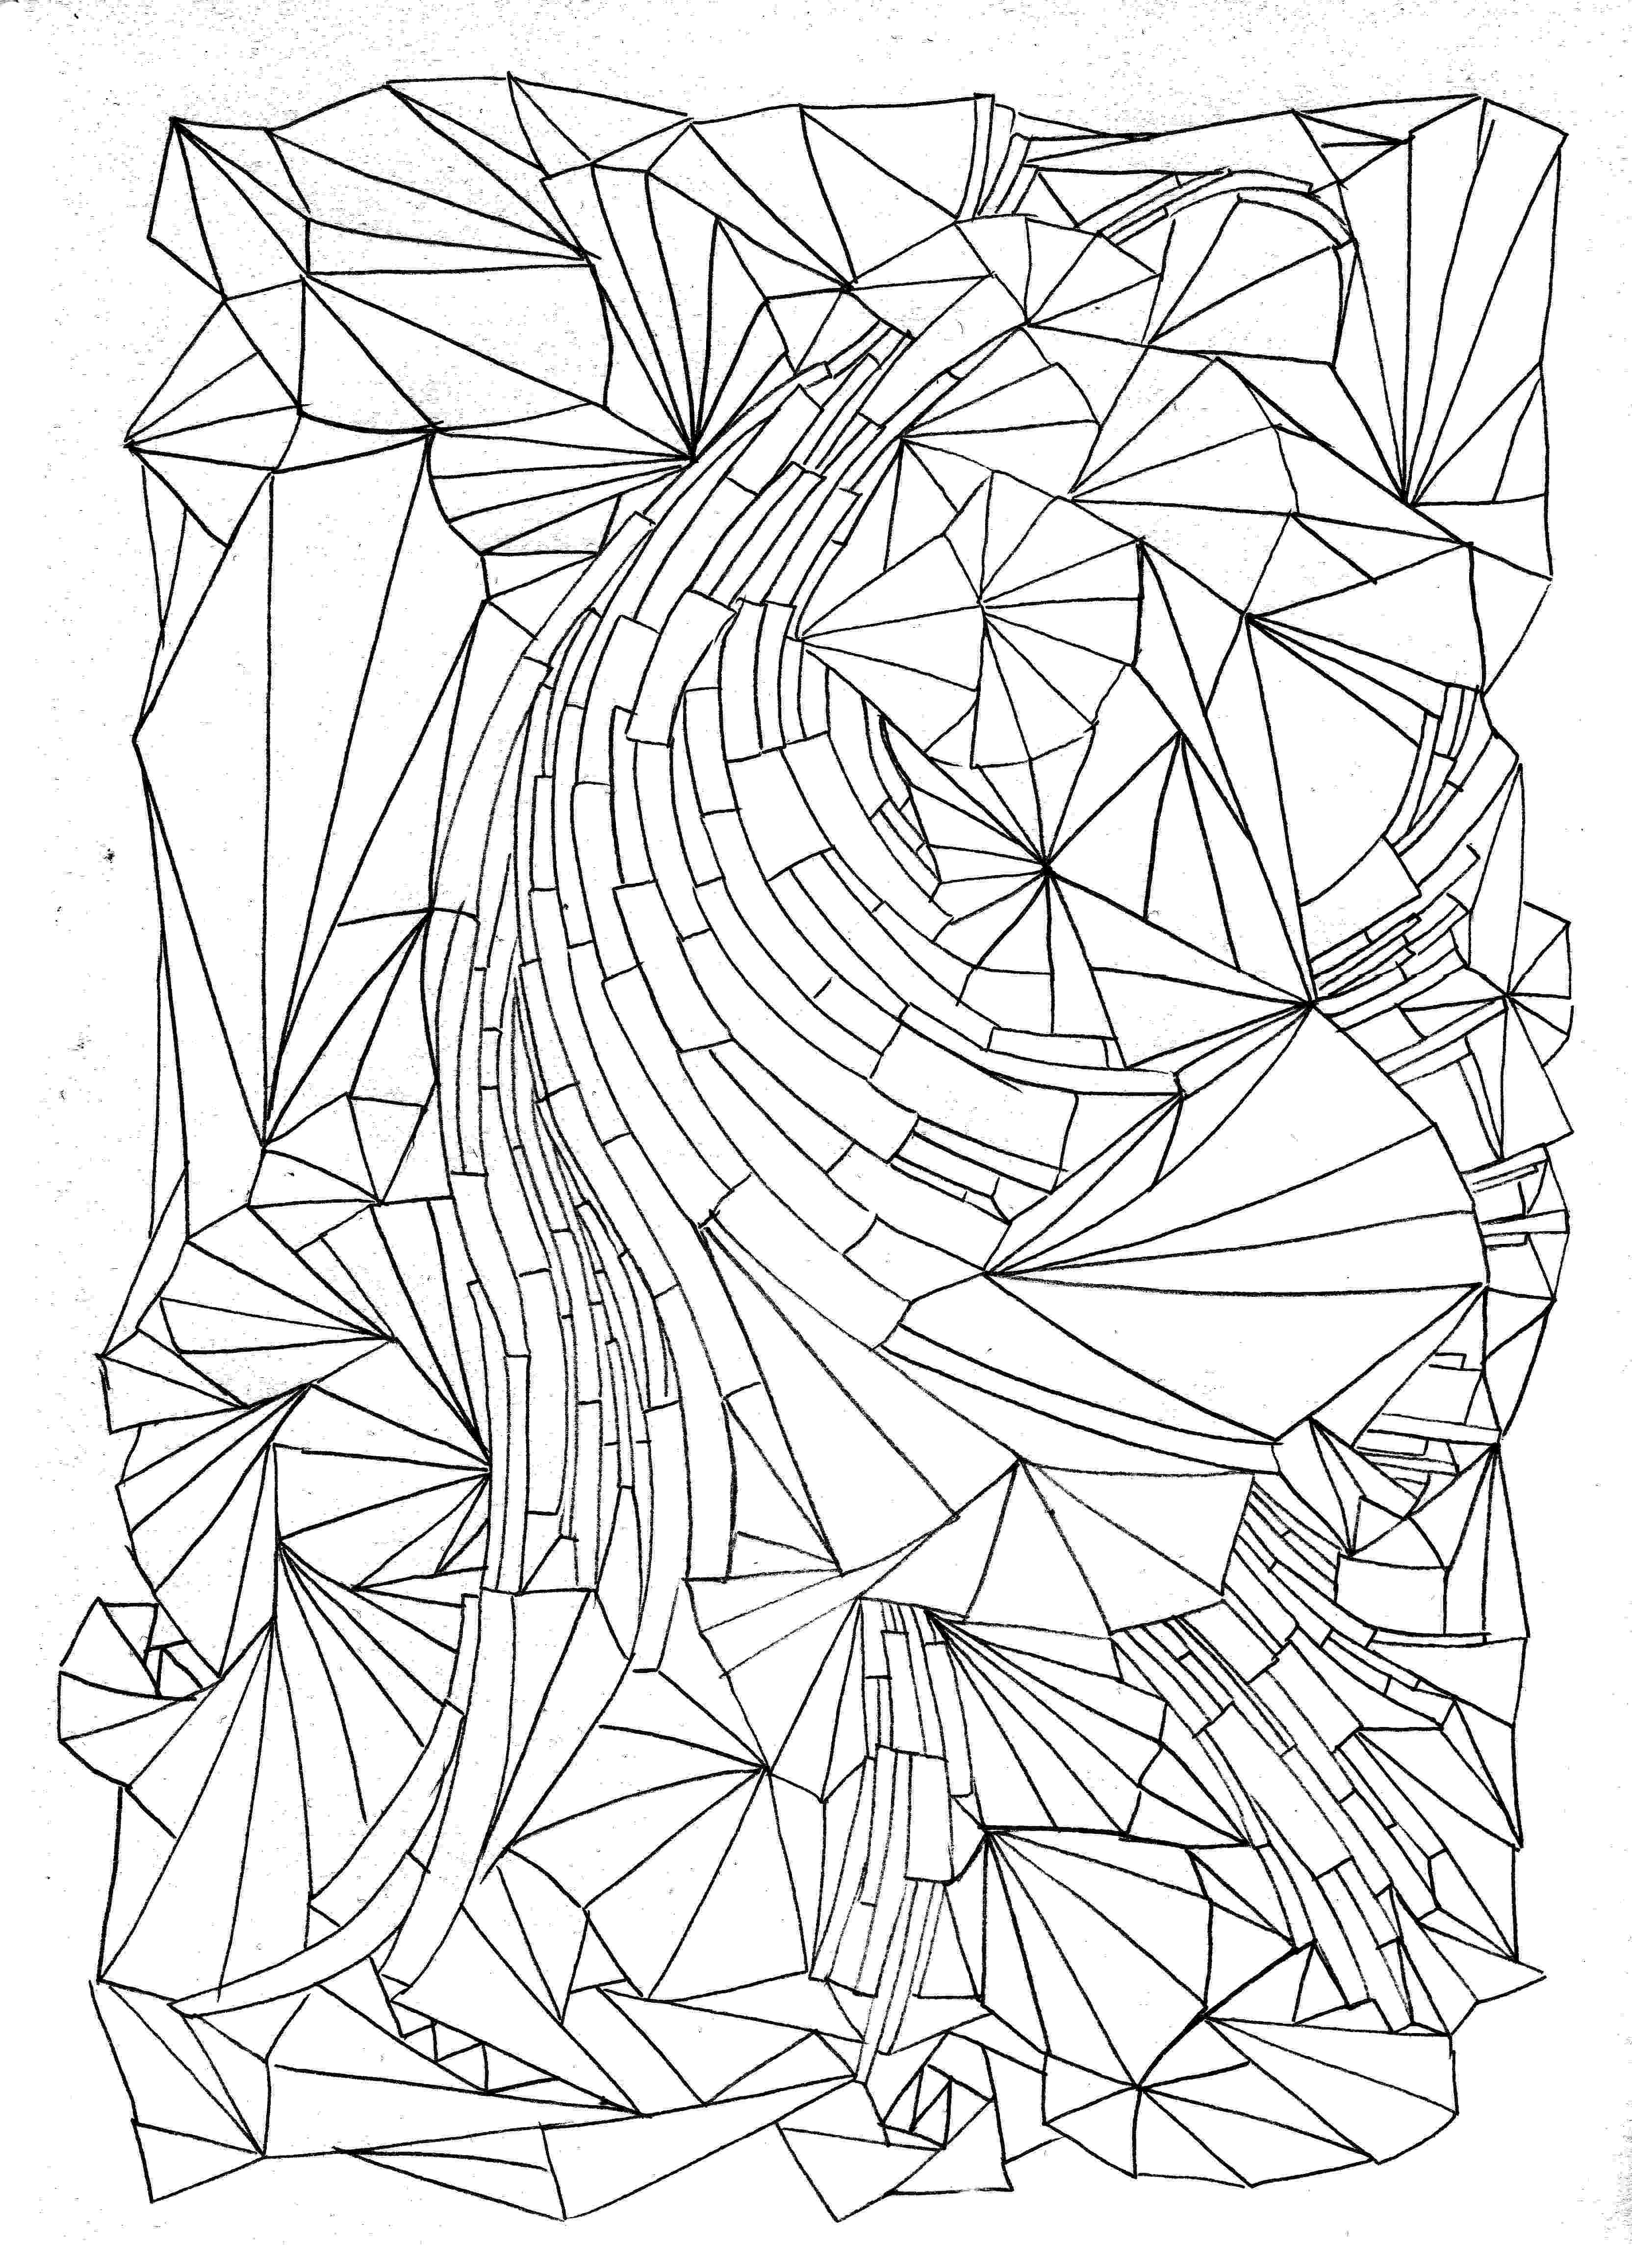 colouring pages patterns rug hooking paper pattern abstract paisley folk art unique patterns colouring pages